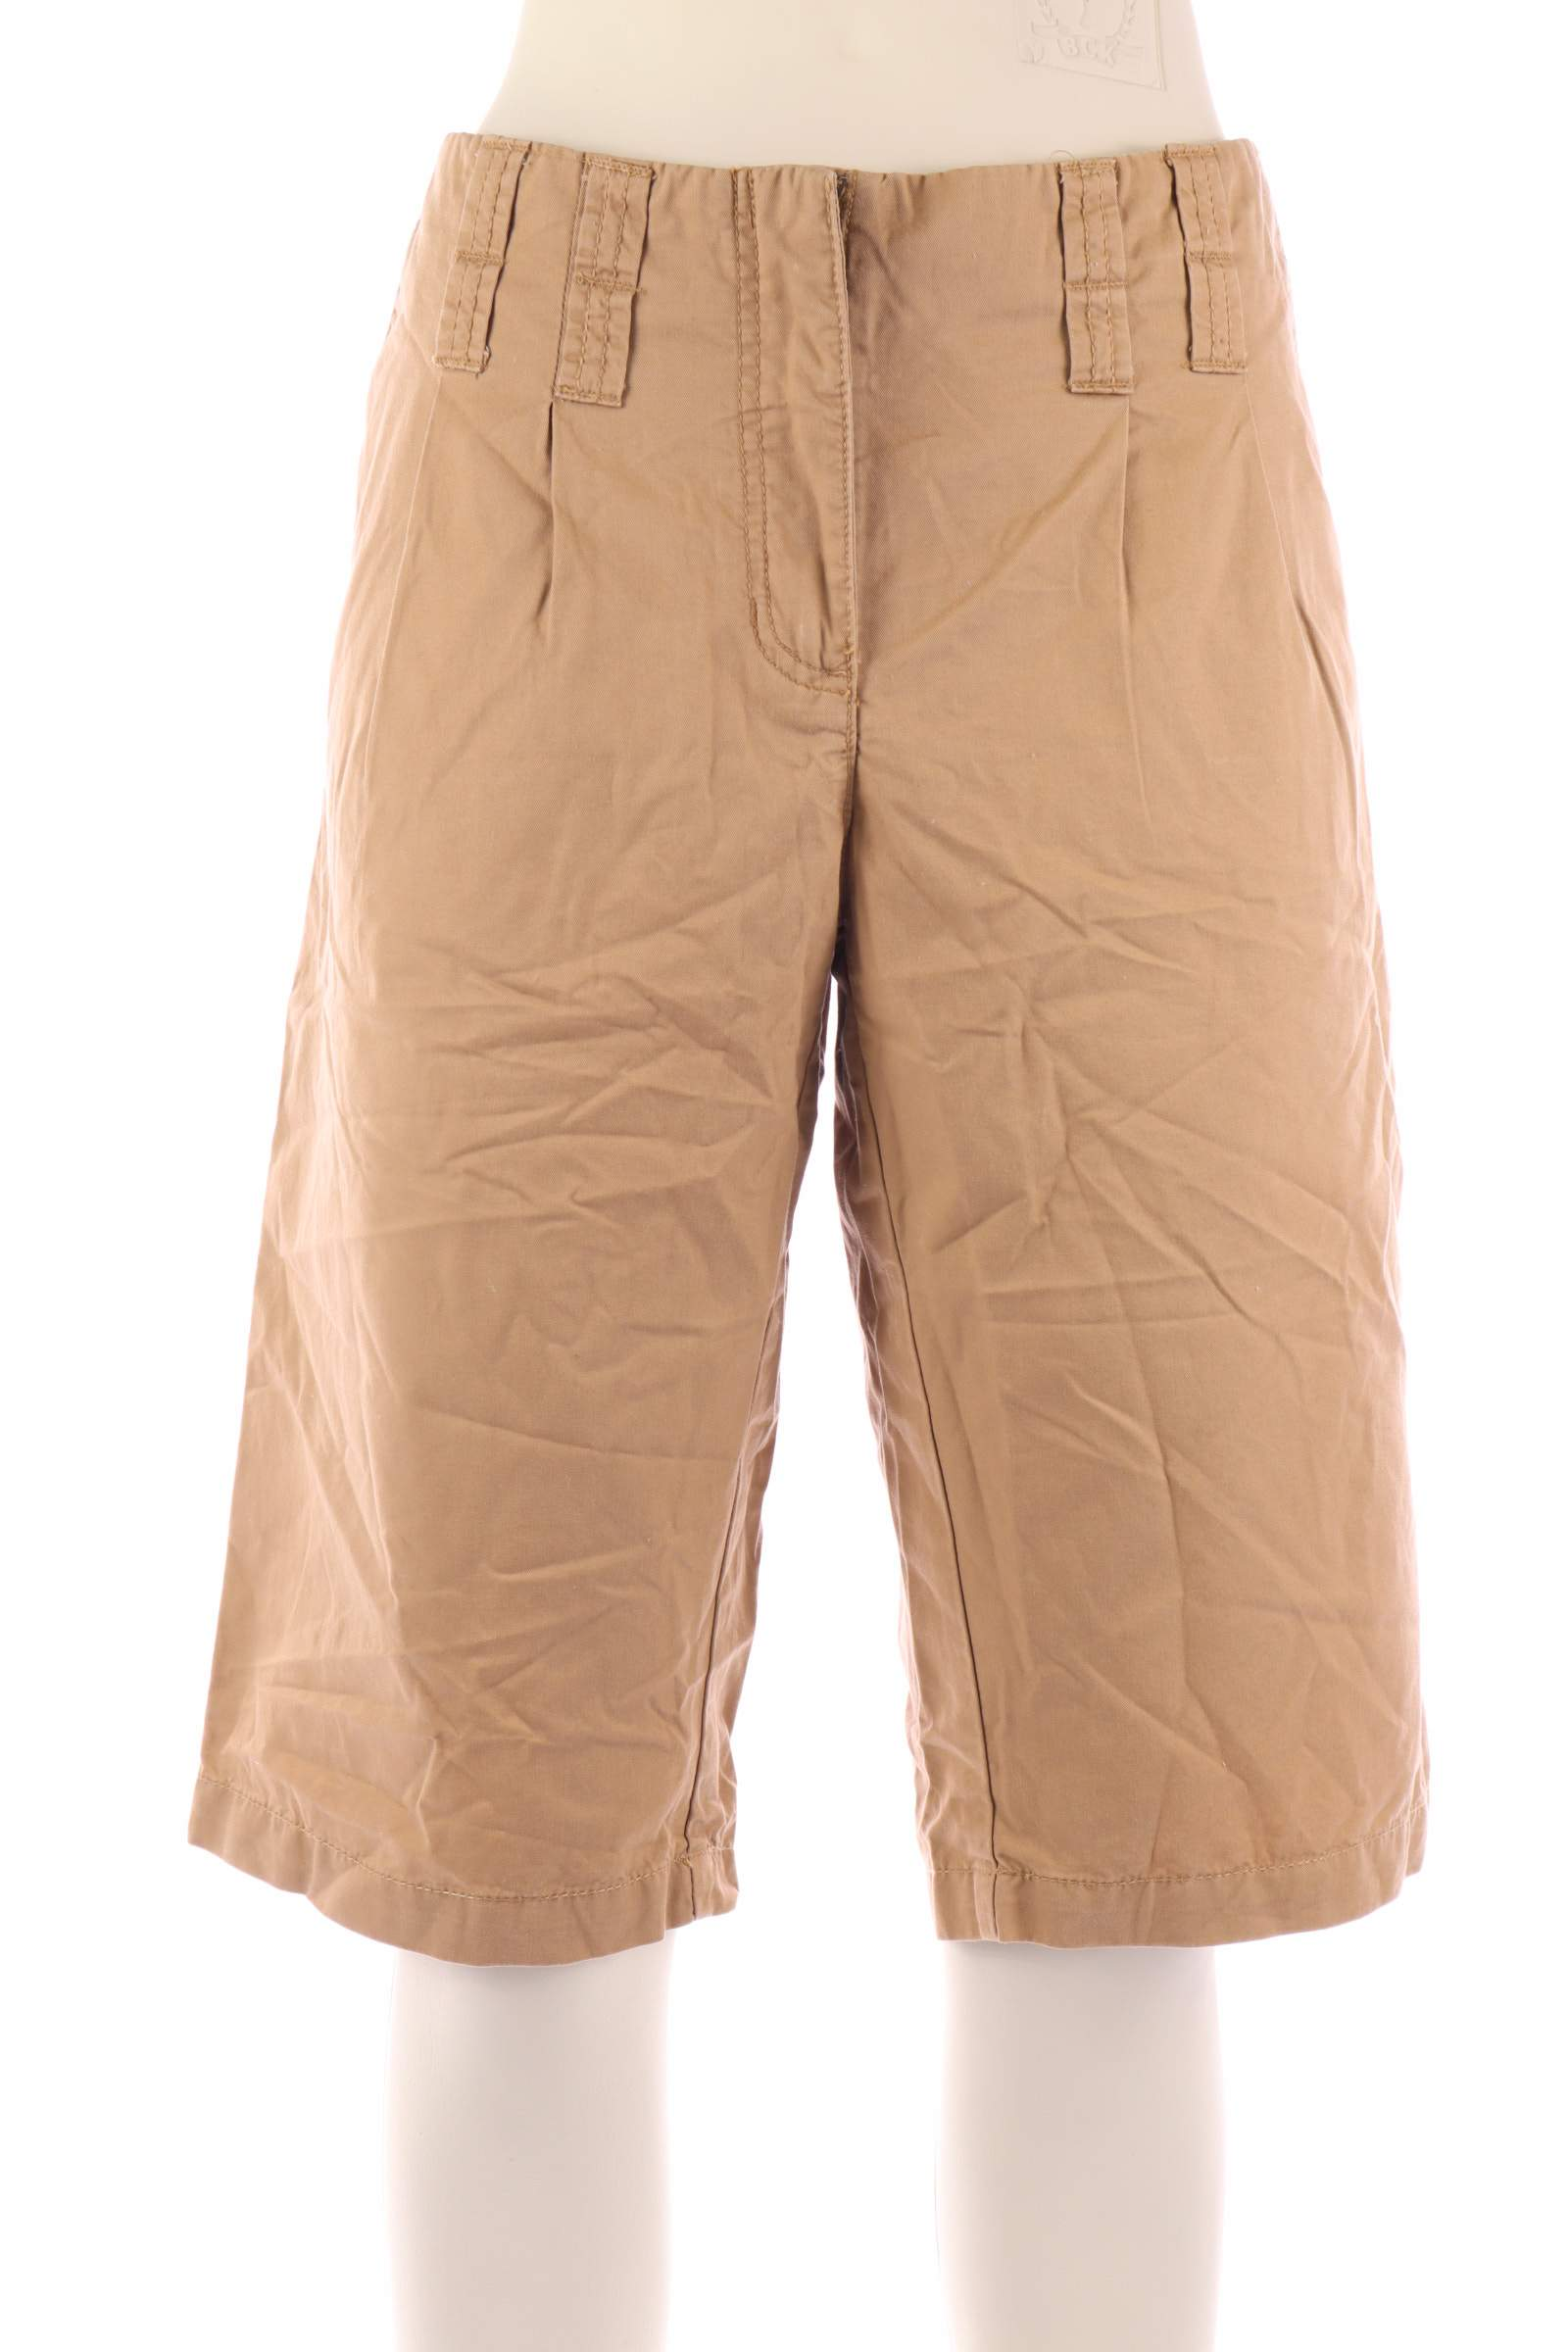 Vero Moda Brown Short - upty.store